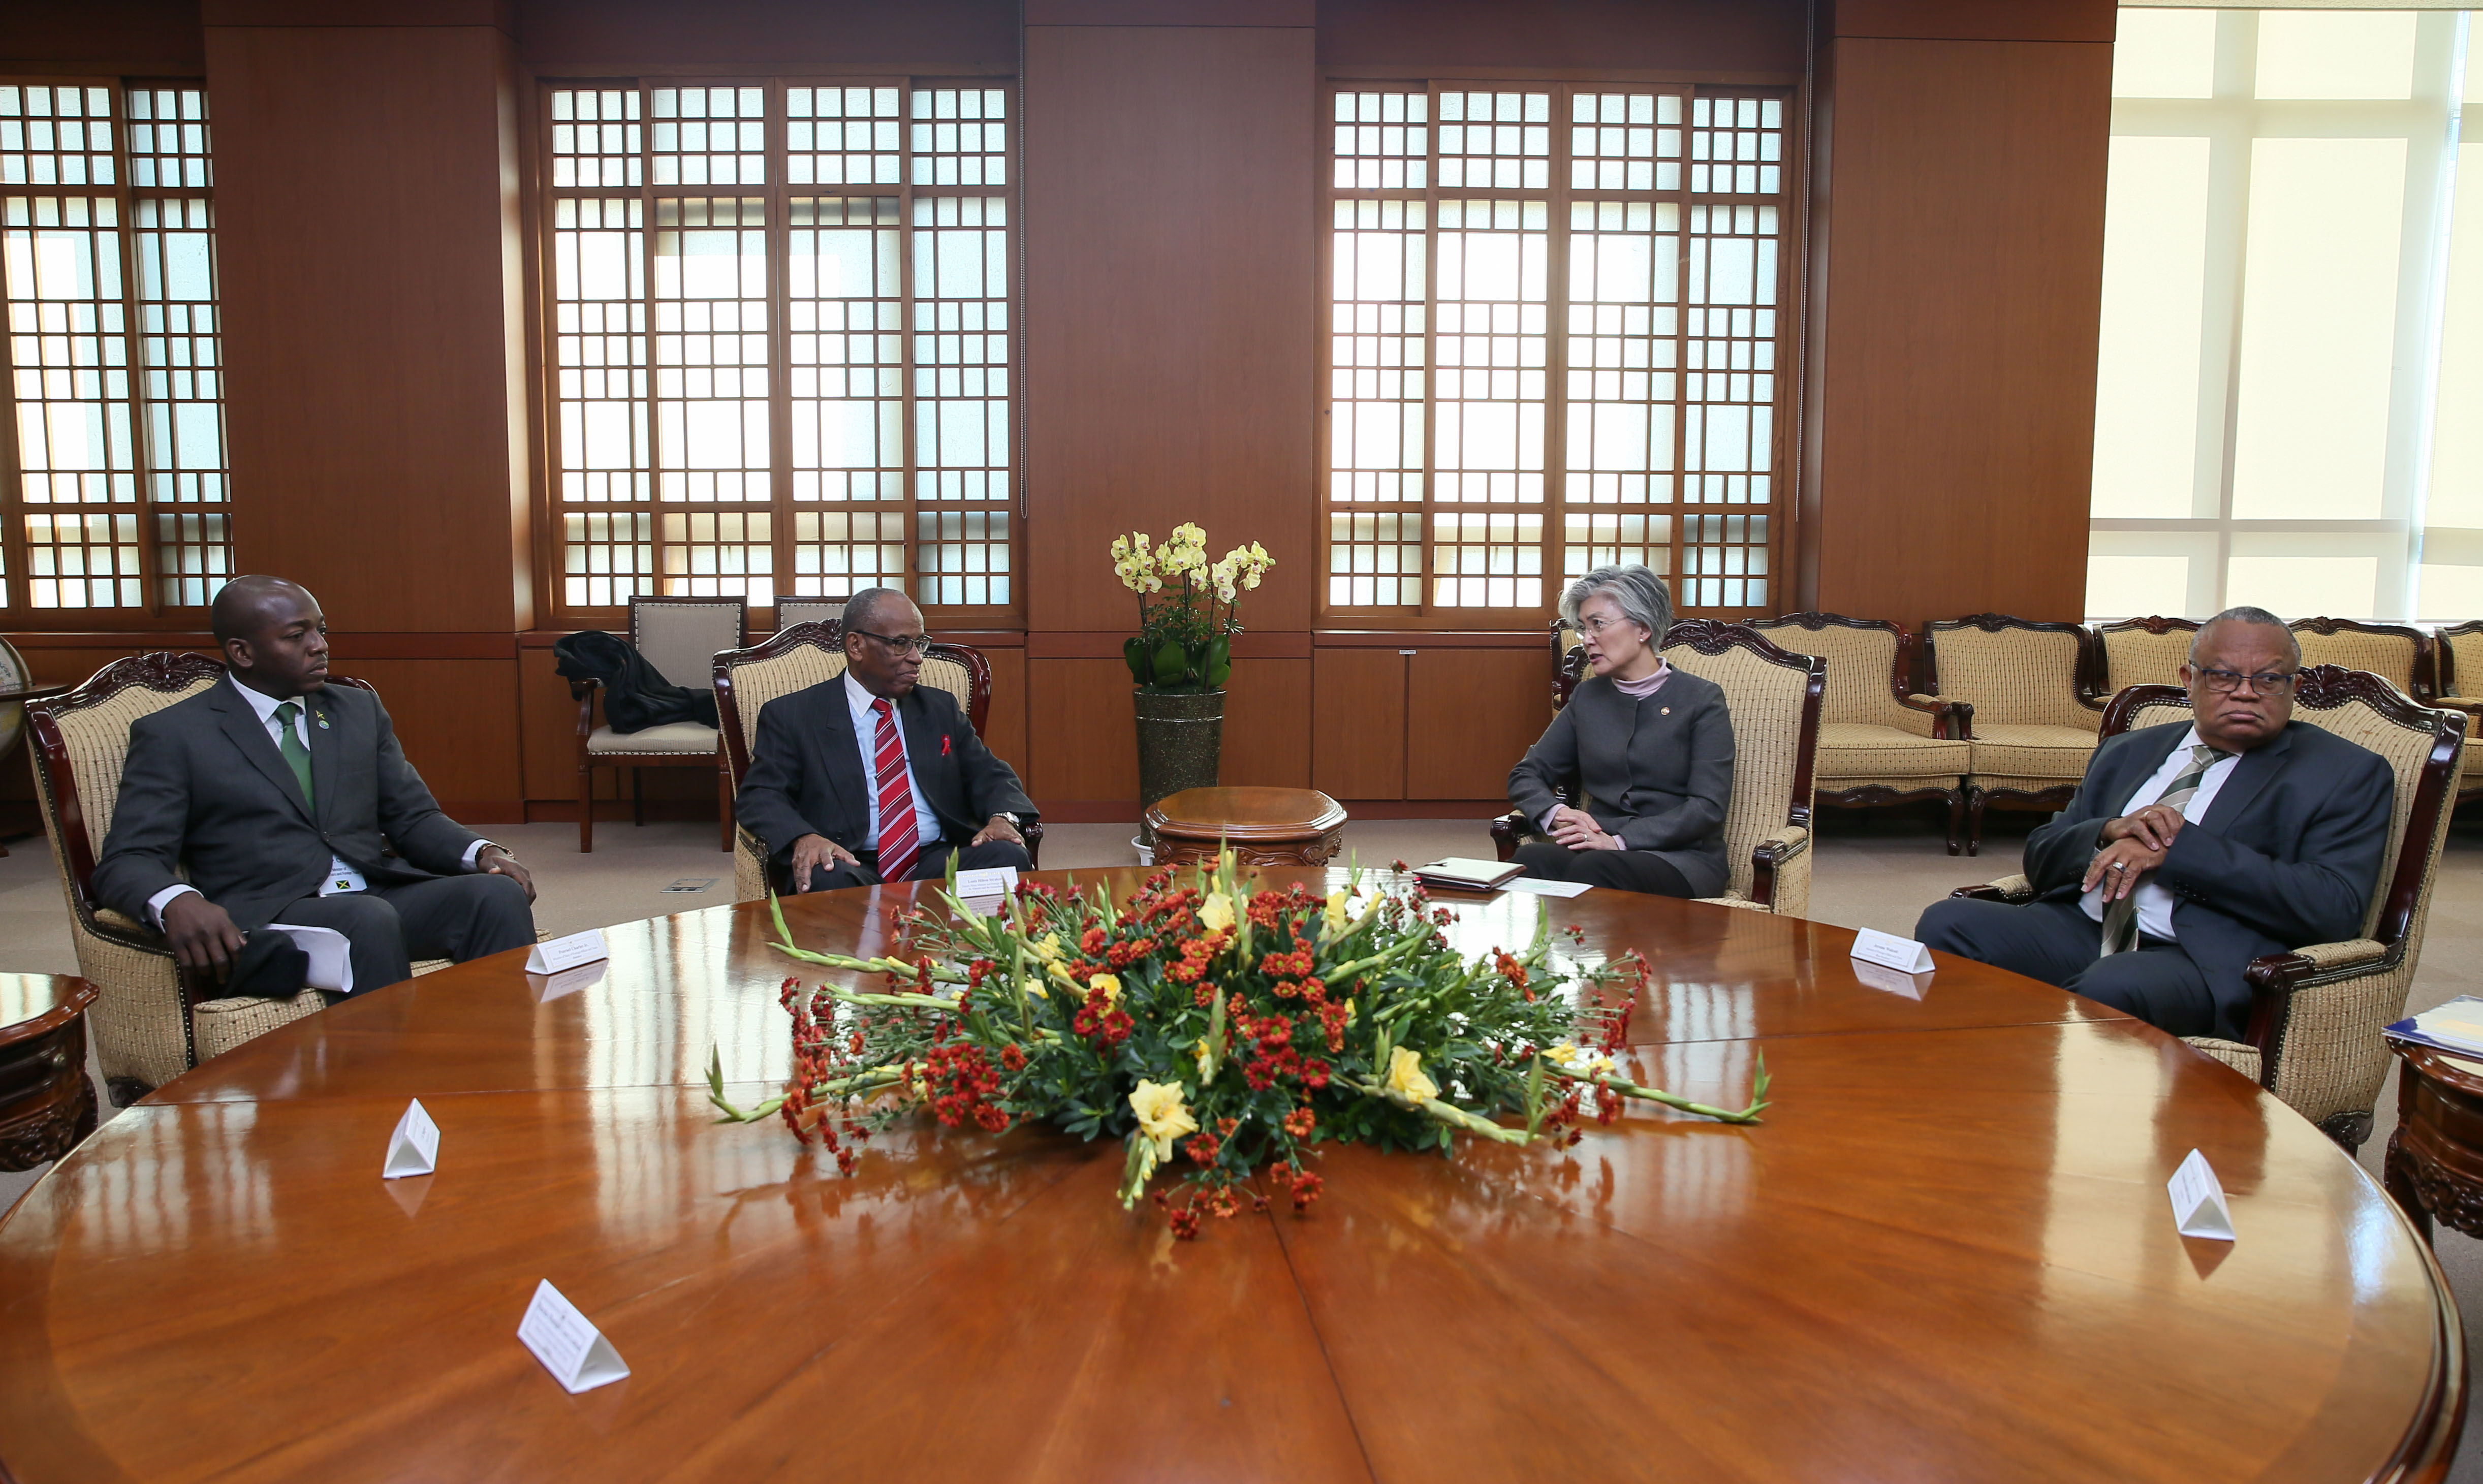 Foreign Ministers of Barbados and St. Vincent and the Grenadines meet with Korean Foreign Minister